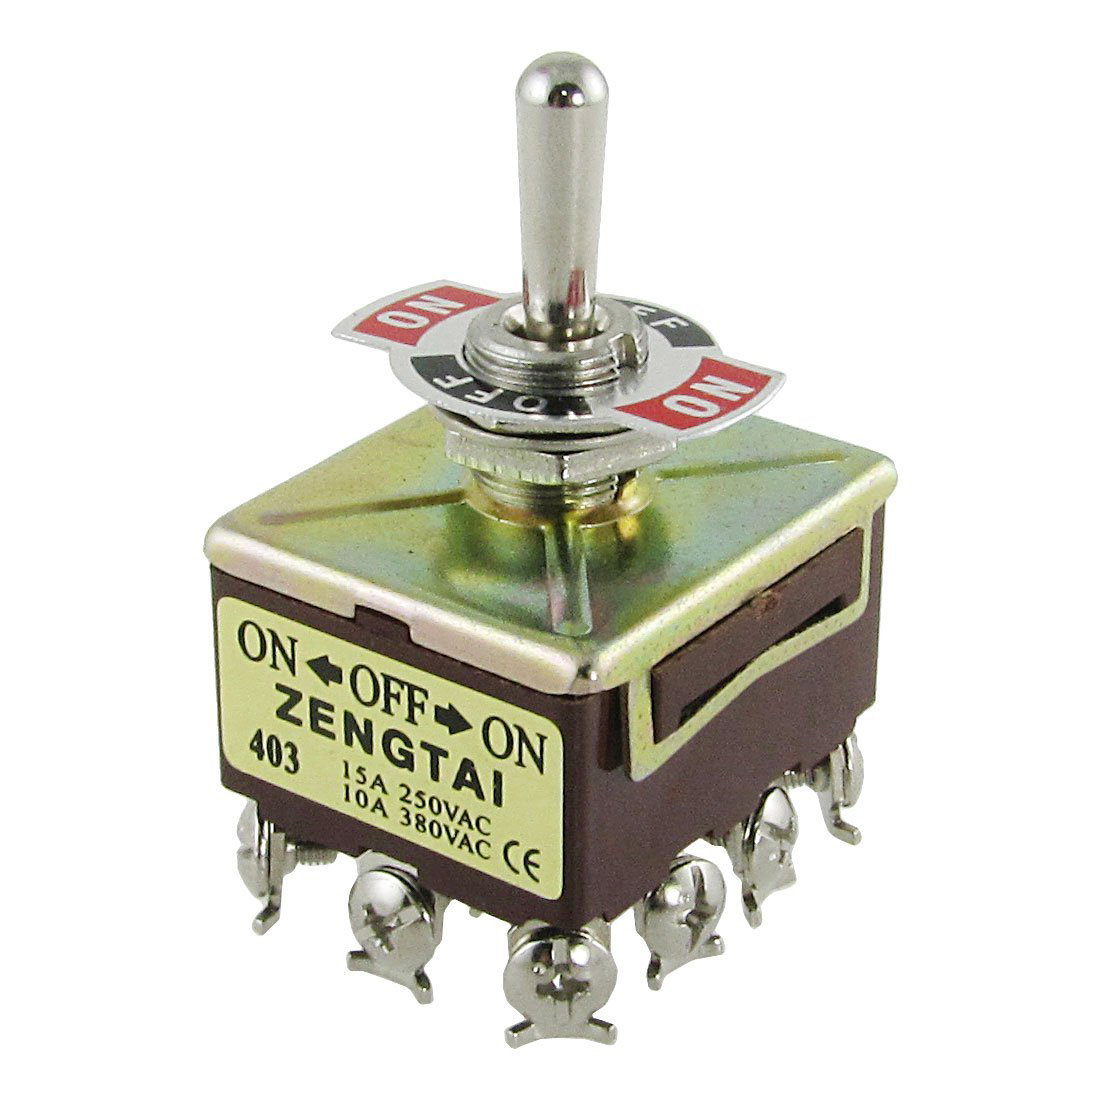 ZENGTAI 10A/380VAC 15A/250VAC 3 Position 4PDT ON/OFF/ON 12 Pin Toggle Switch image